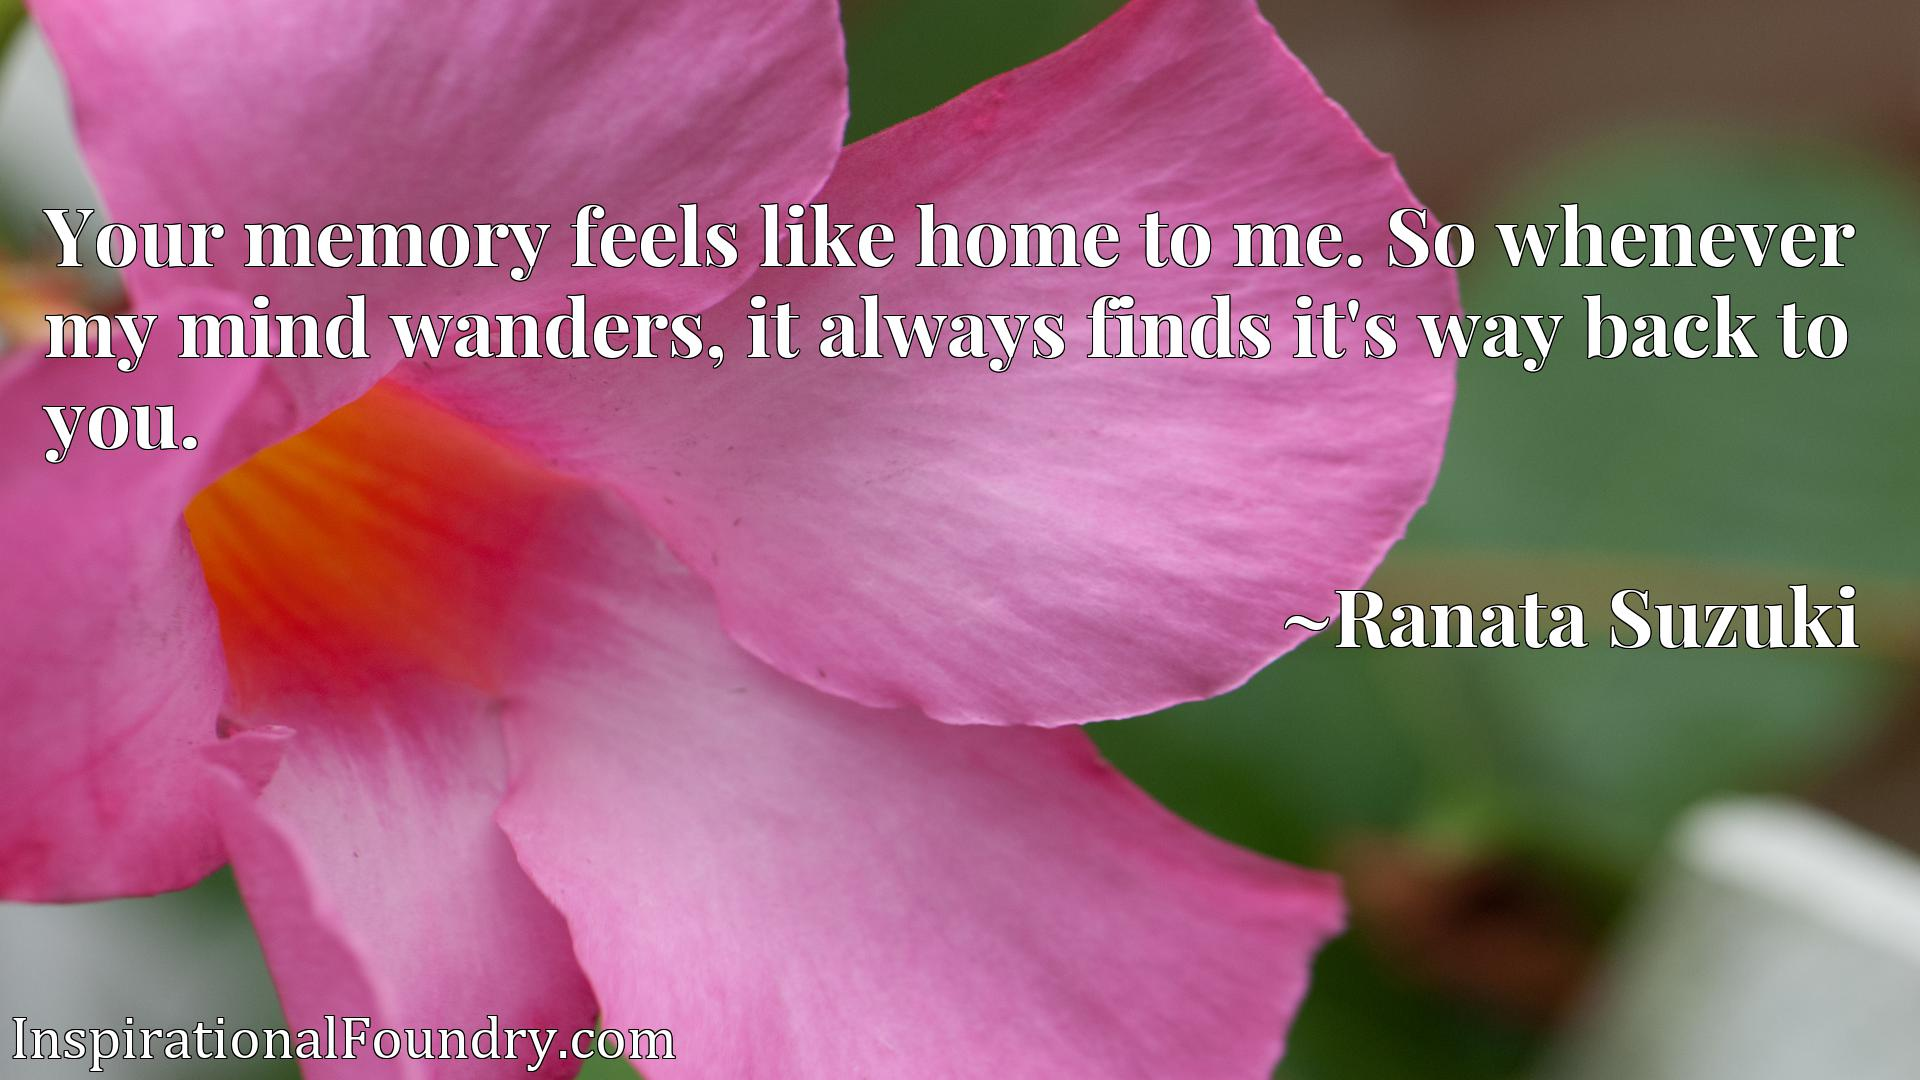 Your memory feels like home to me. So whenever my mind wanders, it always finds it's way back to you.